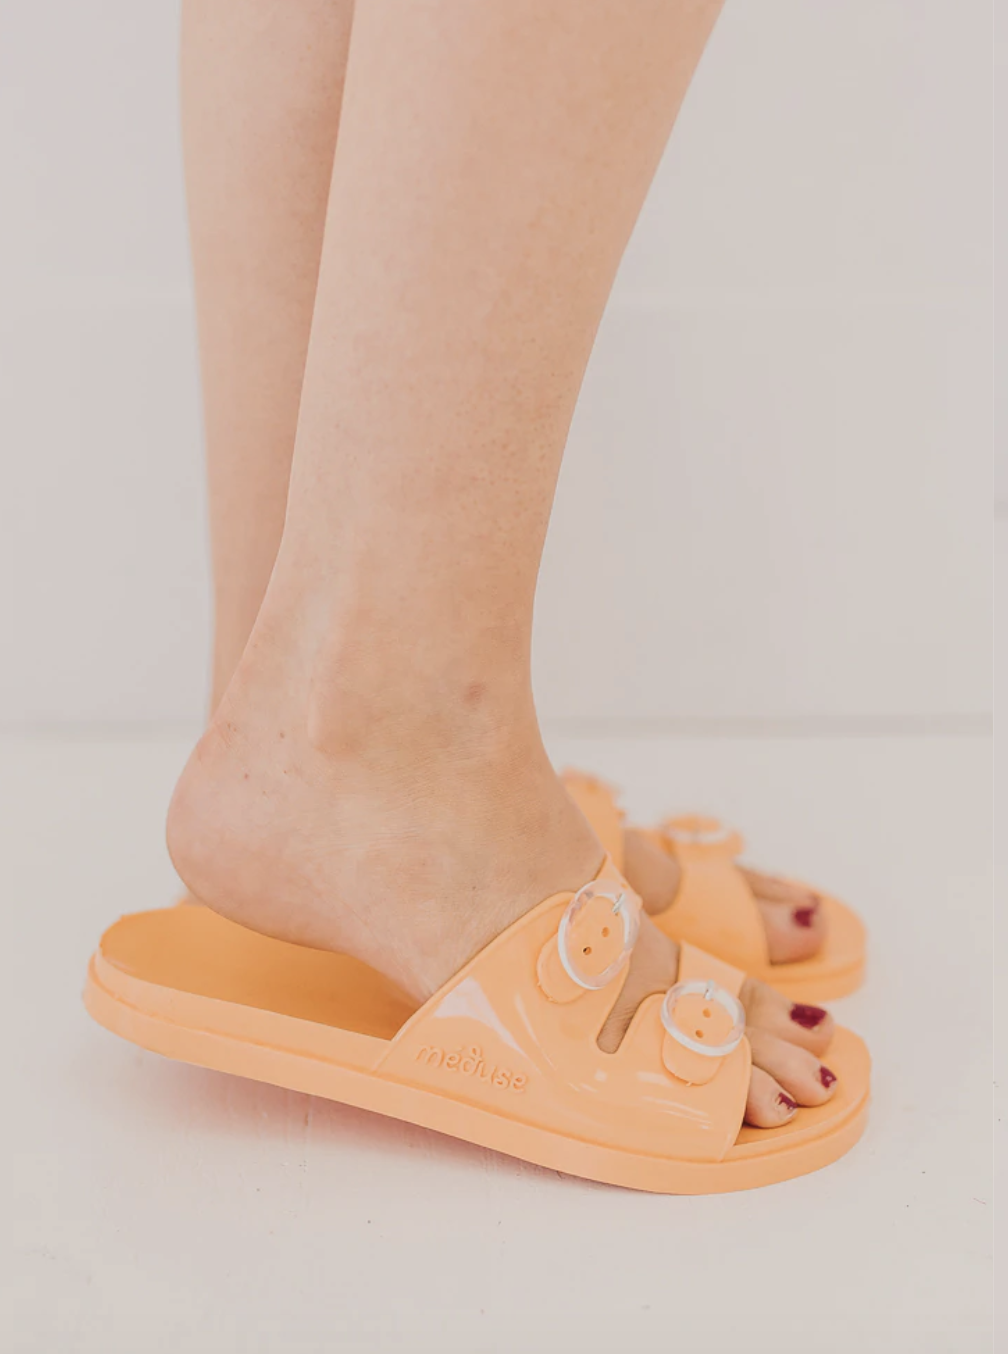 Open toed slip on jellies with buckle detail.